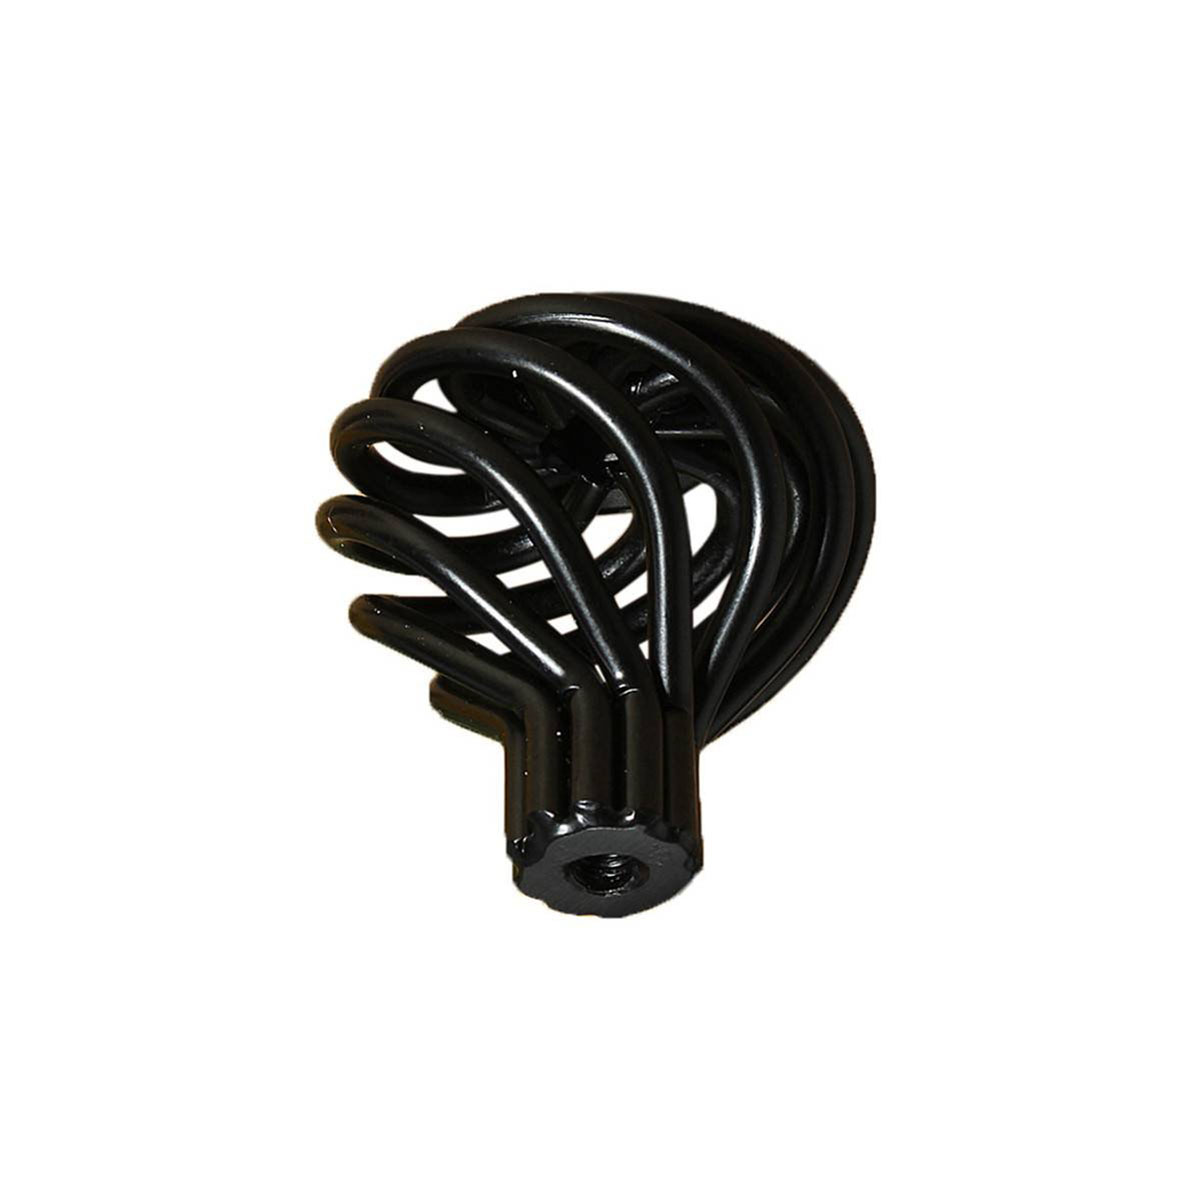 Retro Antique Door Knob Drawer Pull Handle Cabinet Cupboard Wardrobe 10pcs Black Grip retro vintage round ceramics drawer knob handle cabinet cupboard door pull decor l057 new hot